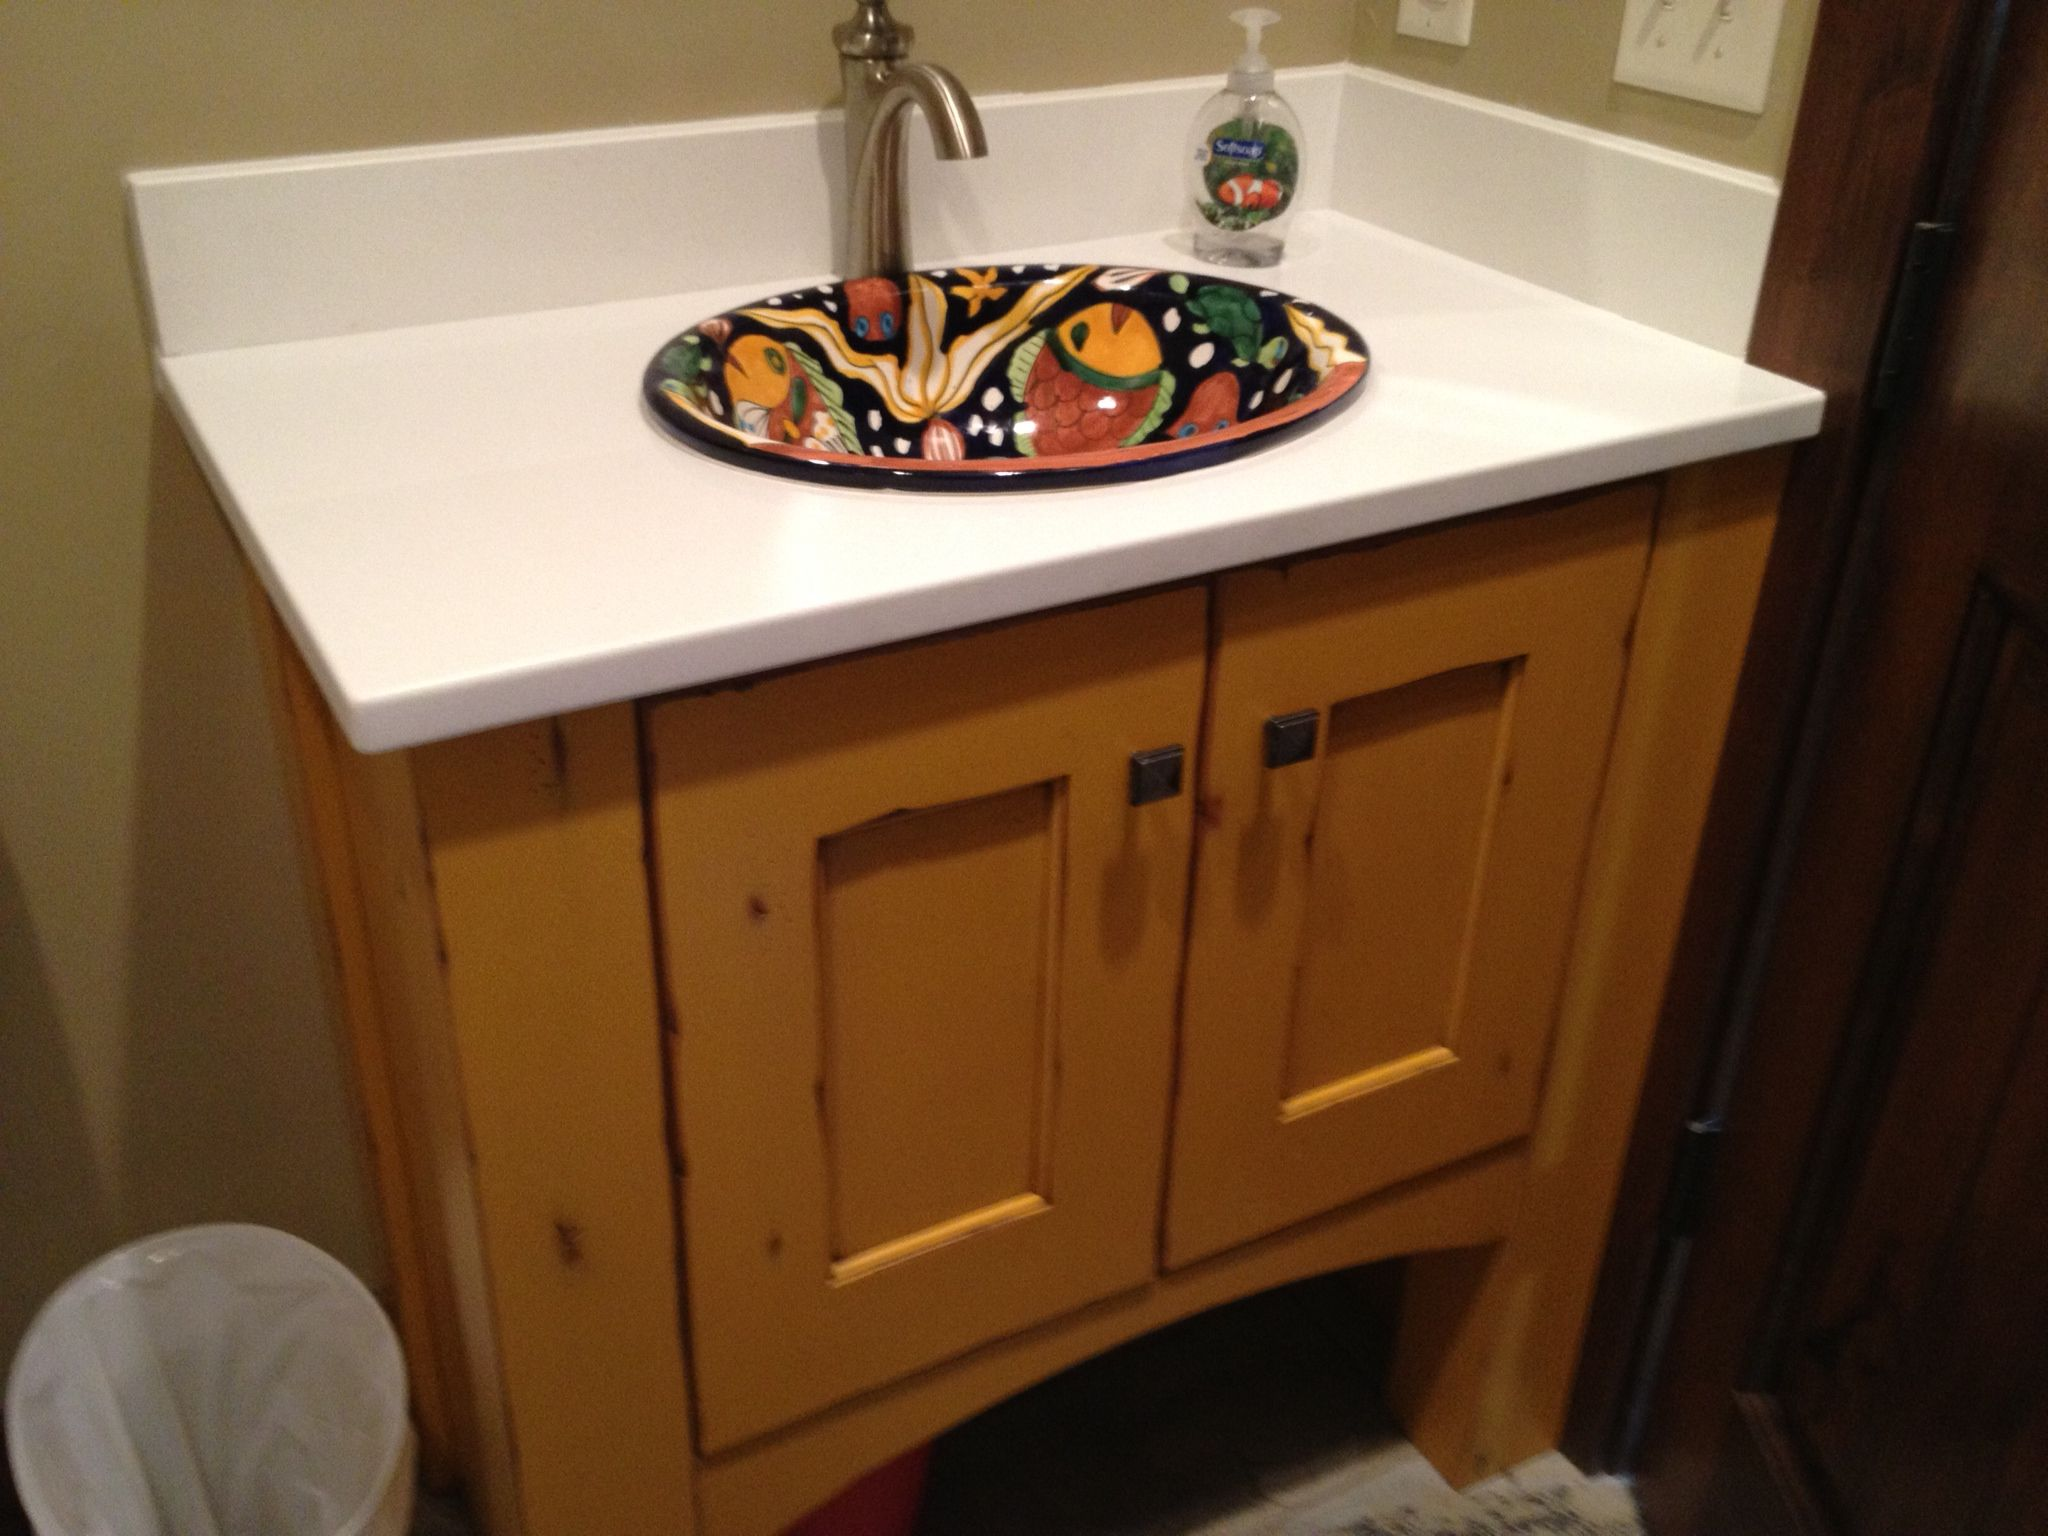 Decorated Mexican Sink Inlaid In Bathroom Cabinets Call Premier Cabinets  In Cache Valley Utah To